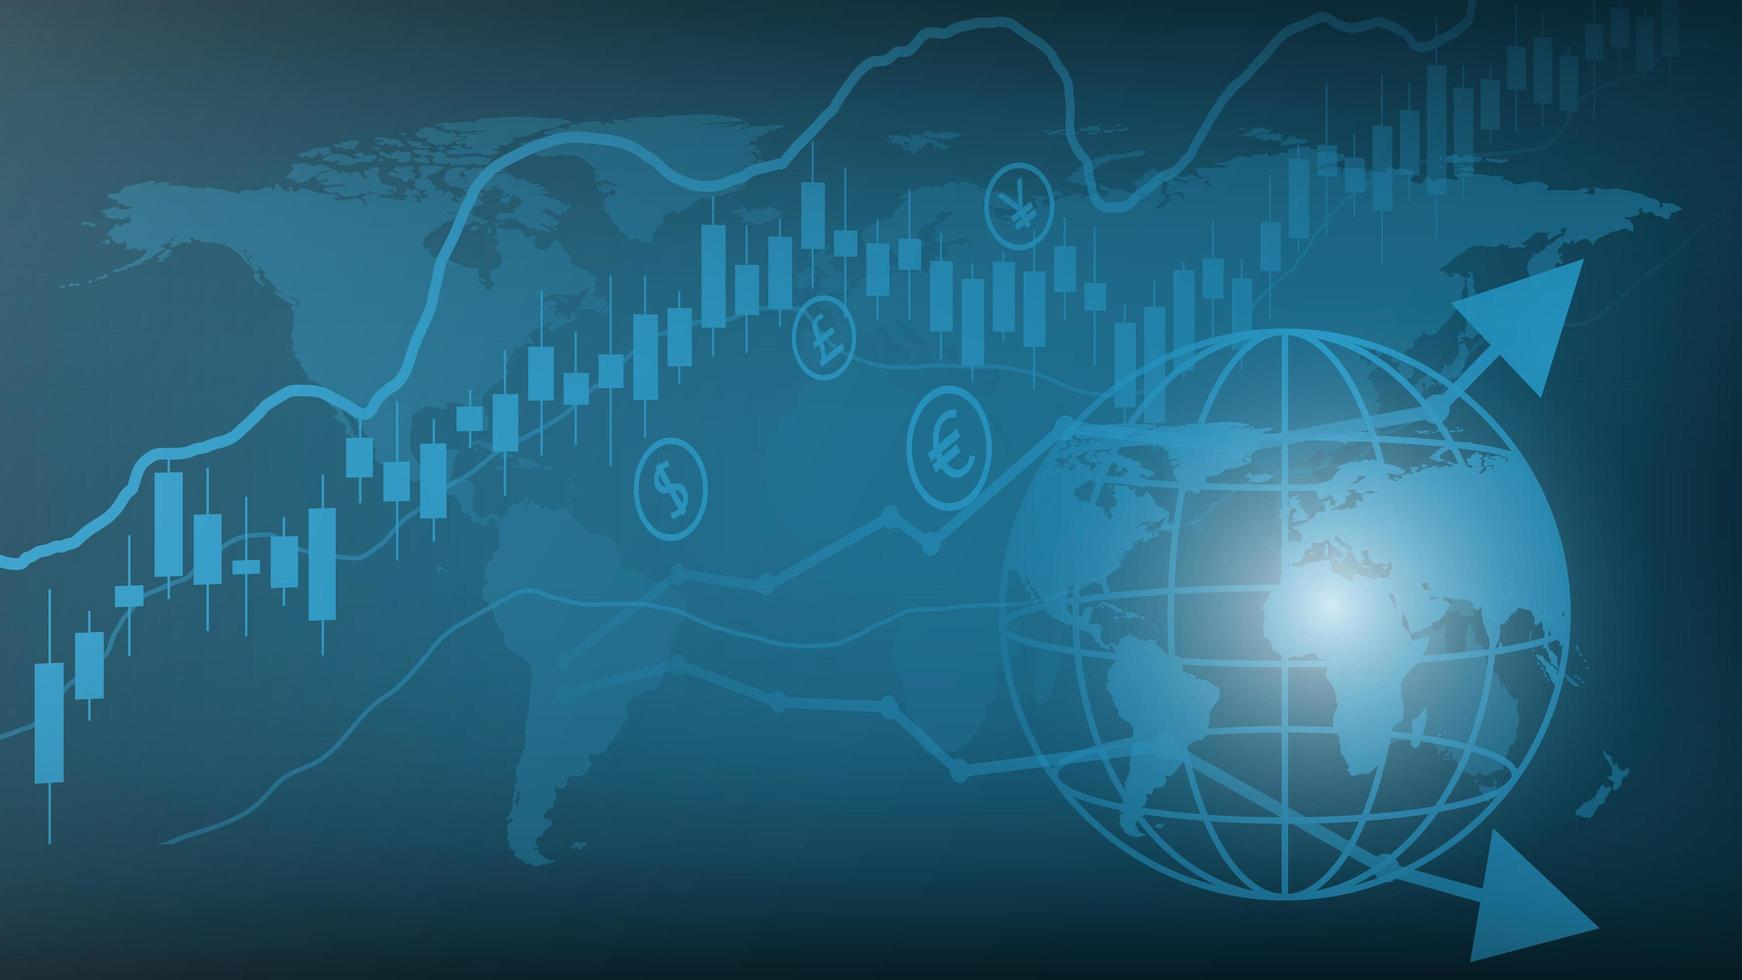 Trading financial business graph chart background vector